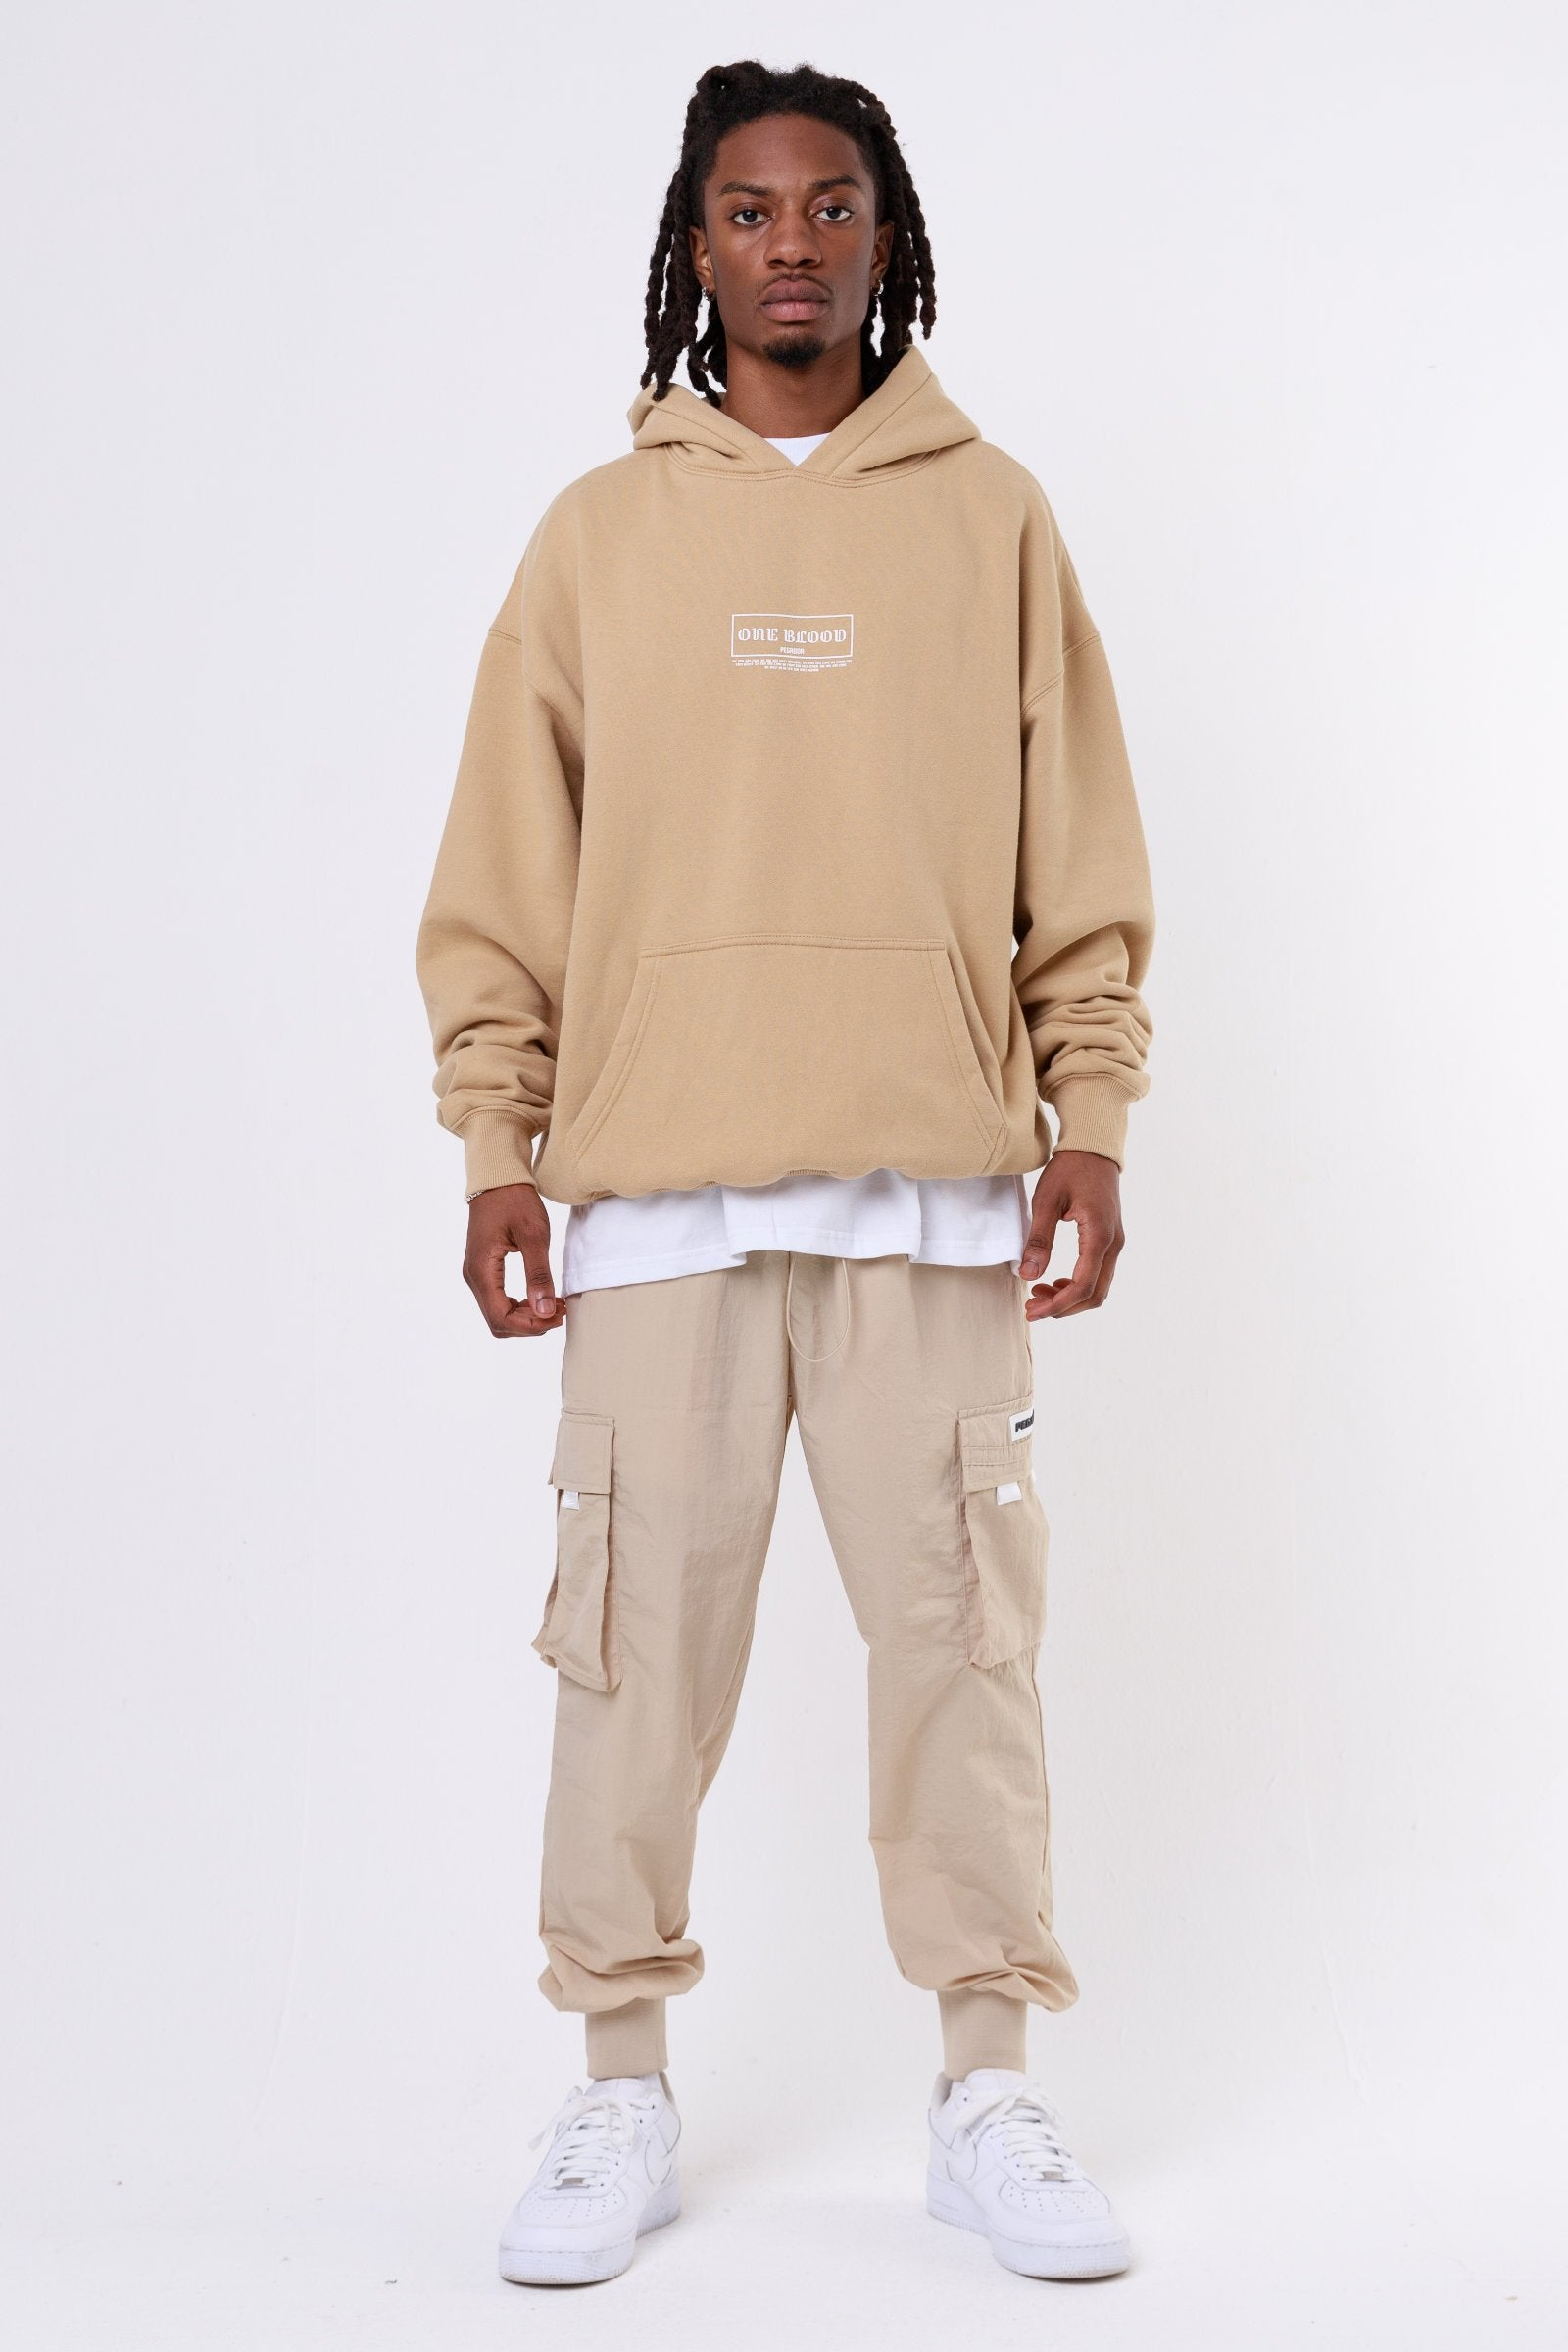 Malibu Oversized Hoodie Washed Cappuccino Hoodies One blood